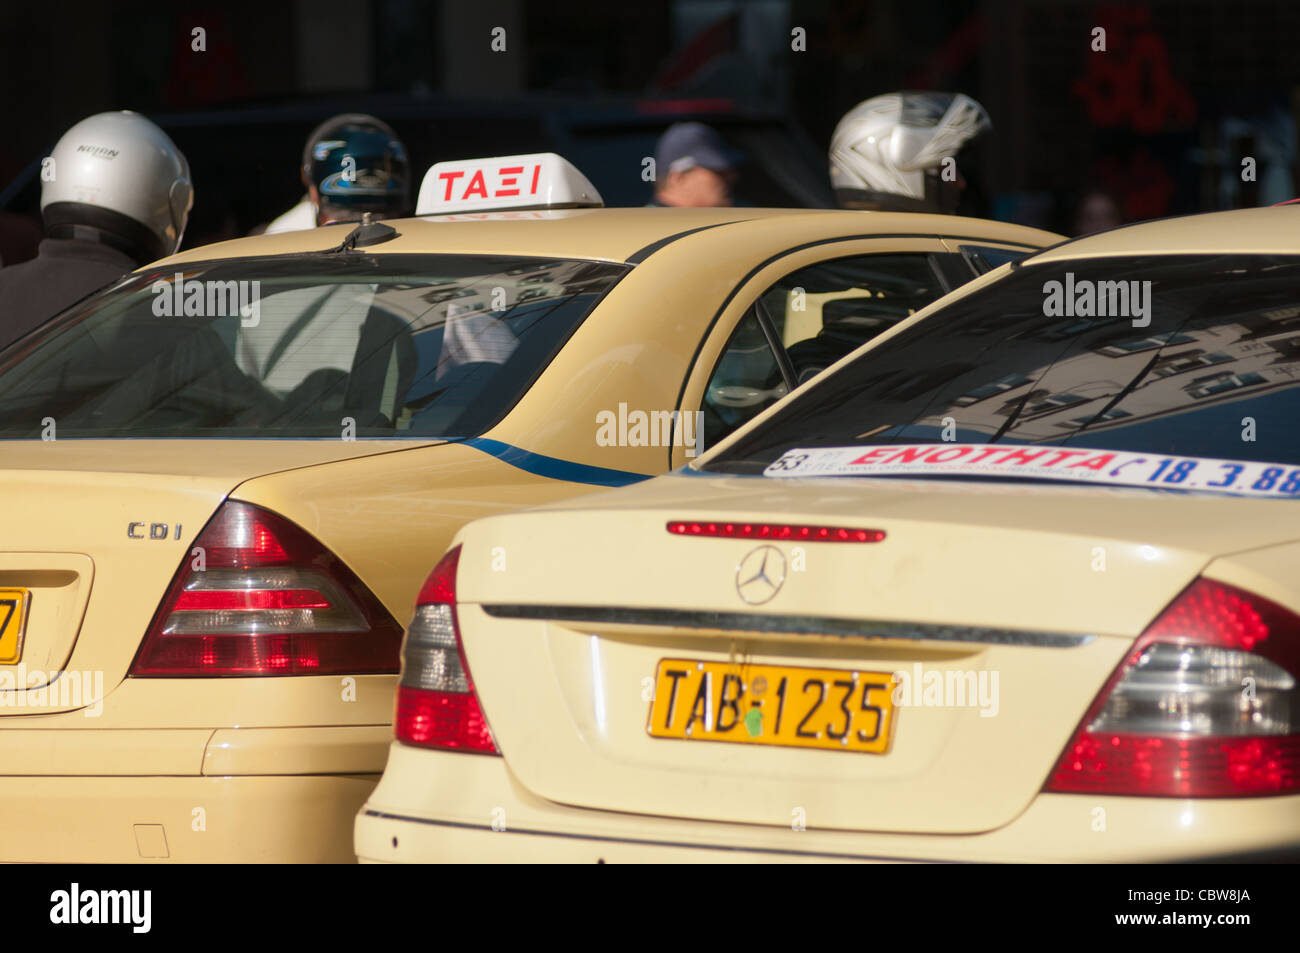 Taxicabs in Athens, Greece. - Stock Image